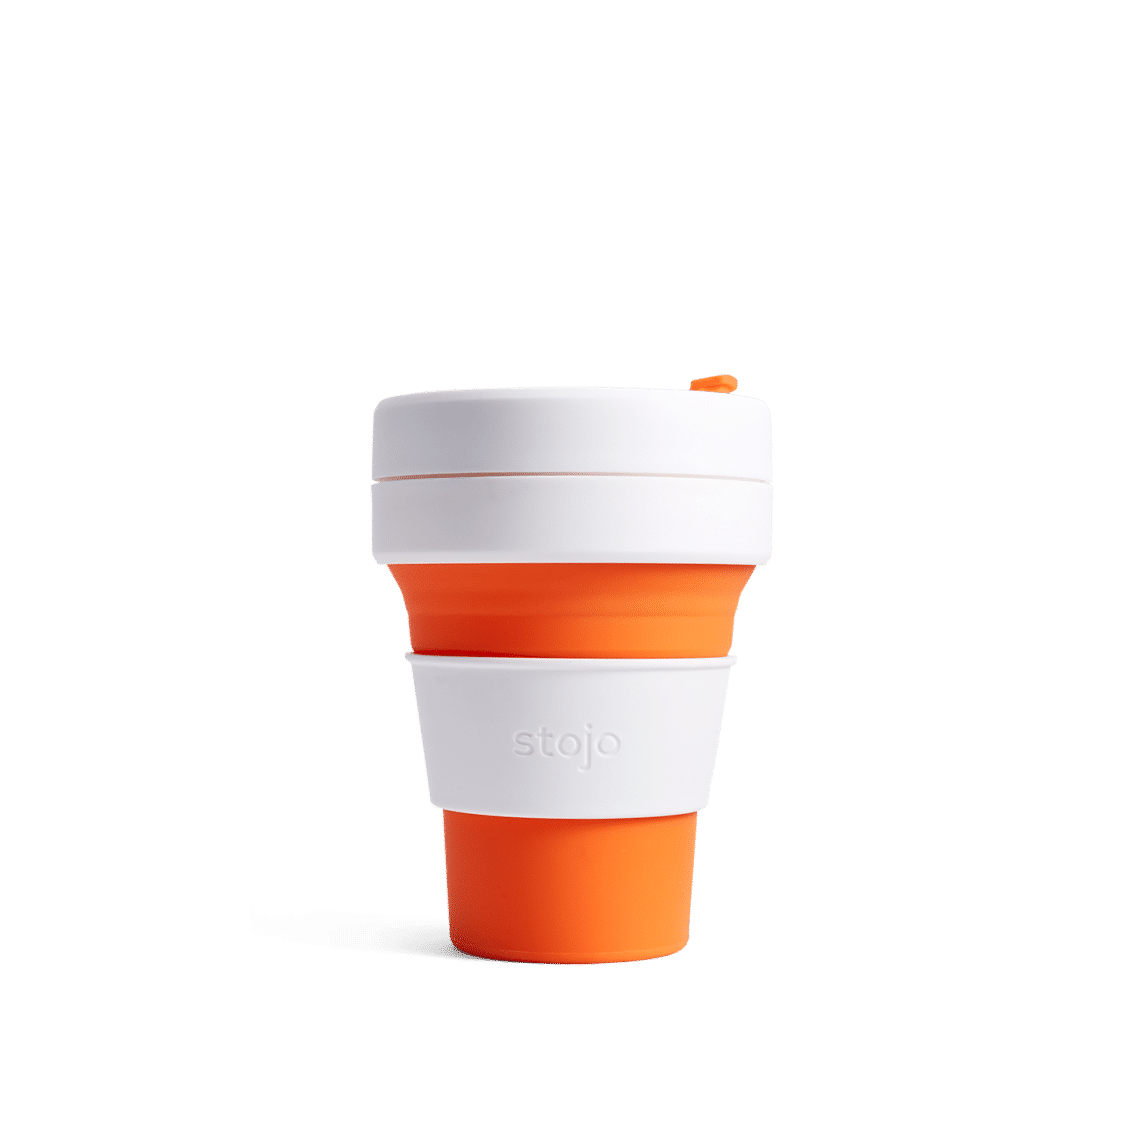 Stojo pocket cup orange expanded